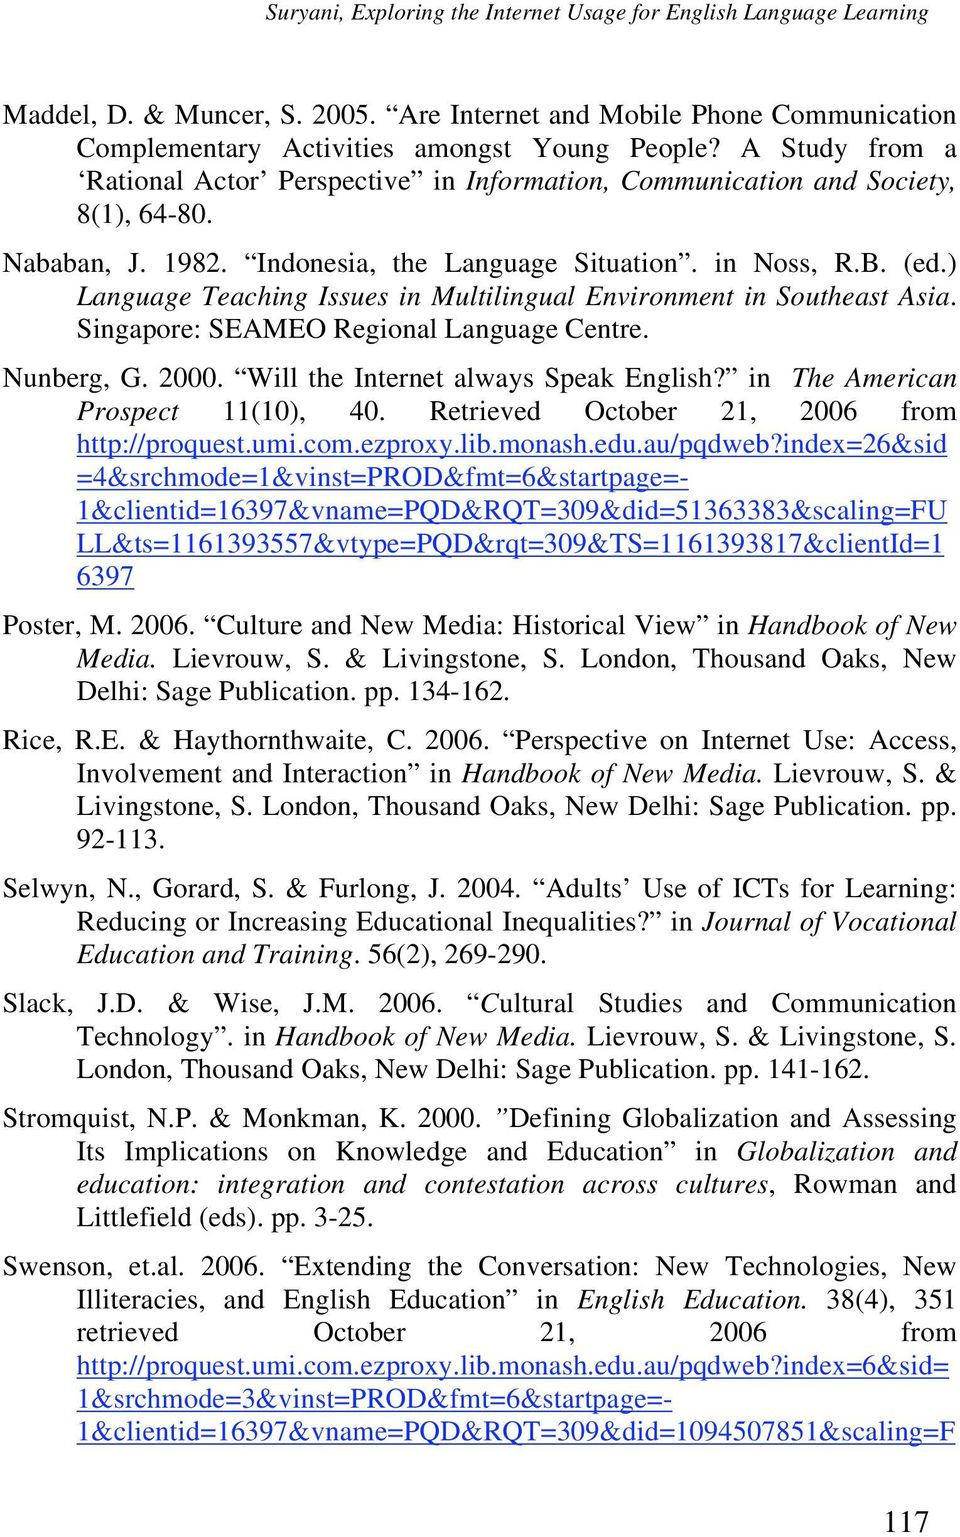 ) Language Teaching Issues in Multilingual Environment in Southeast Asia. Singapore: SEAMEO Regional Language Centre. Nunberg, G. 2000. Will the Internet always Speak English?